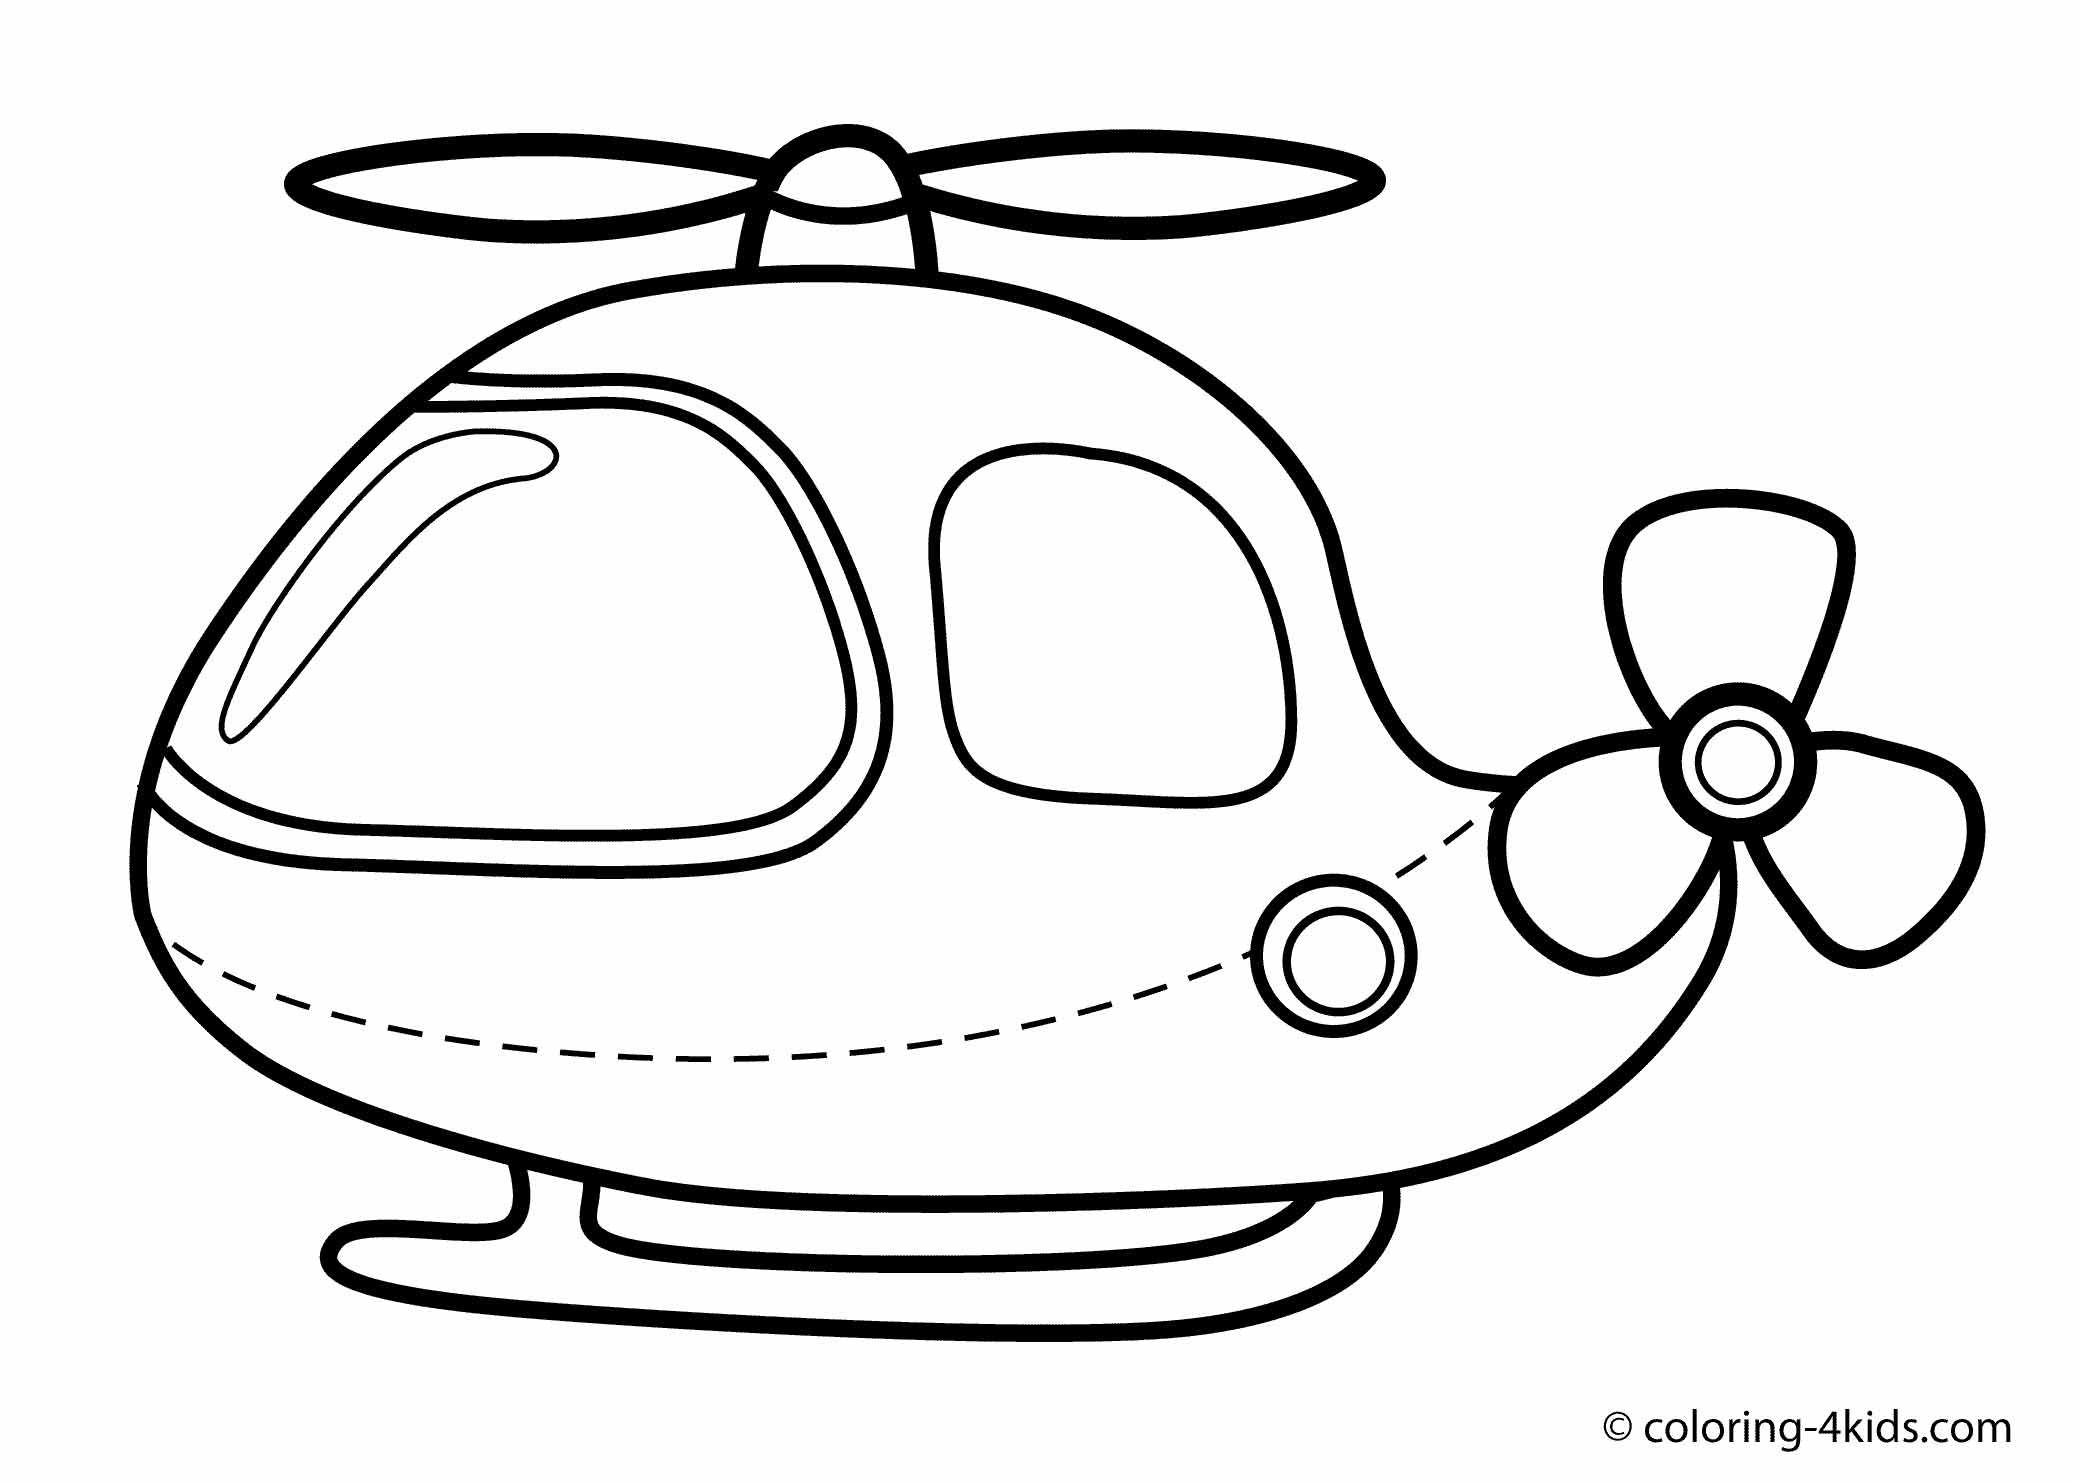 - Helicopter Coloring Page For Kids, Printable Free Helicopter